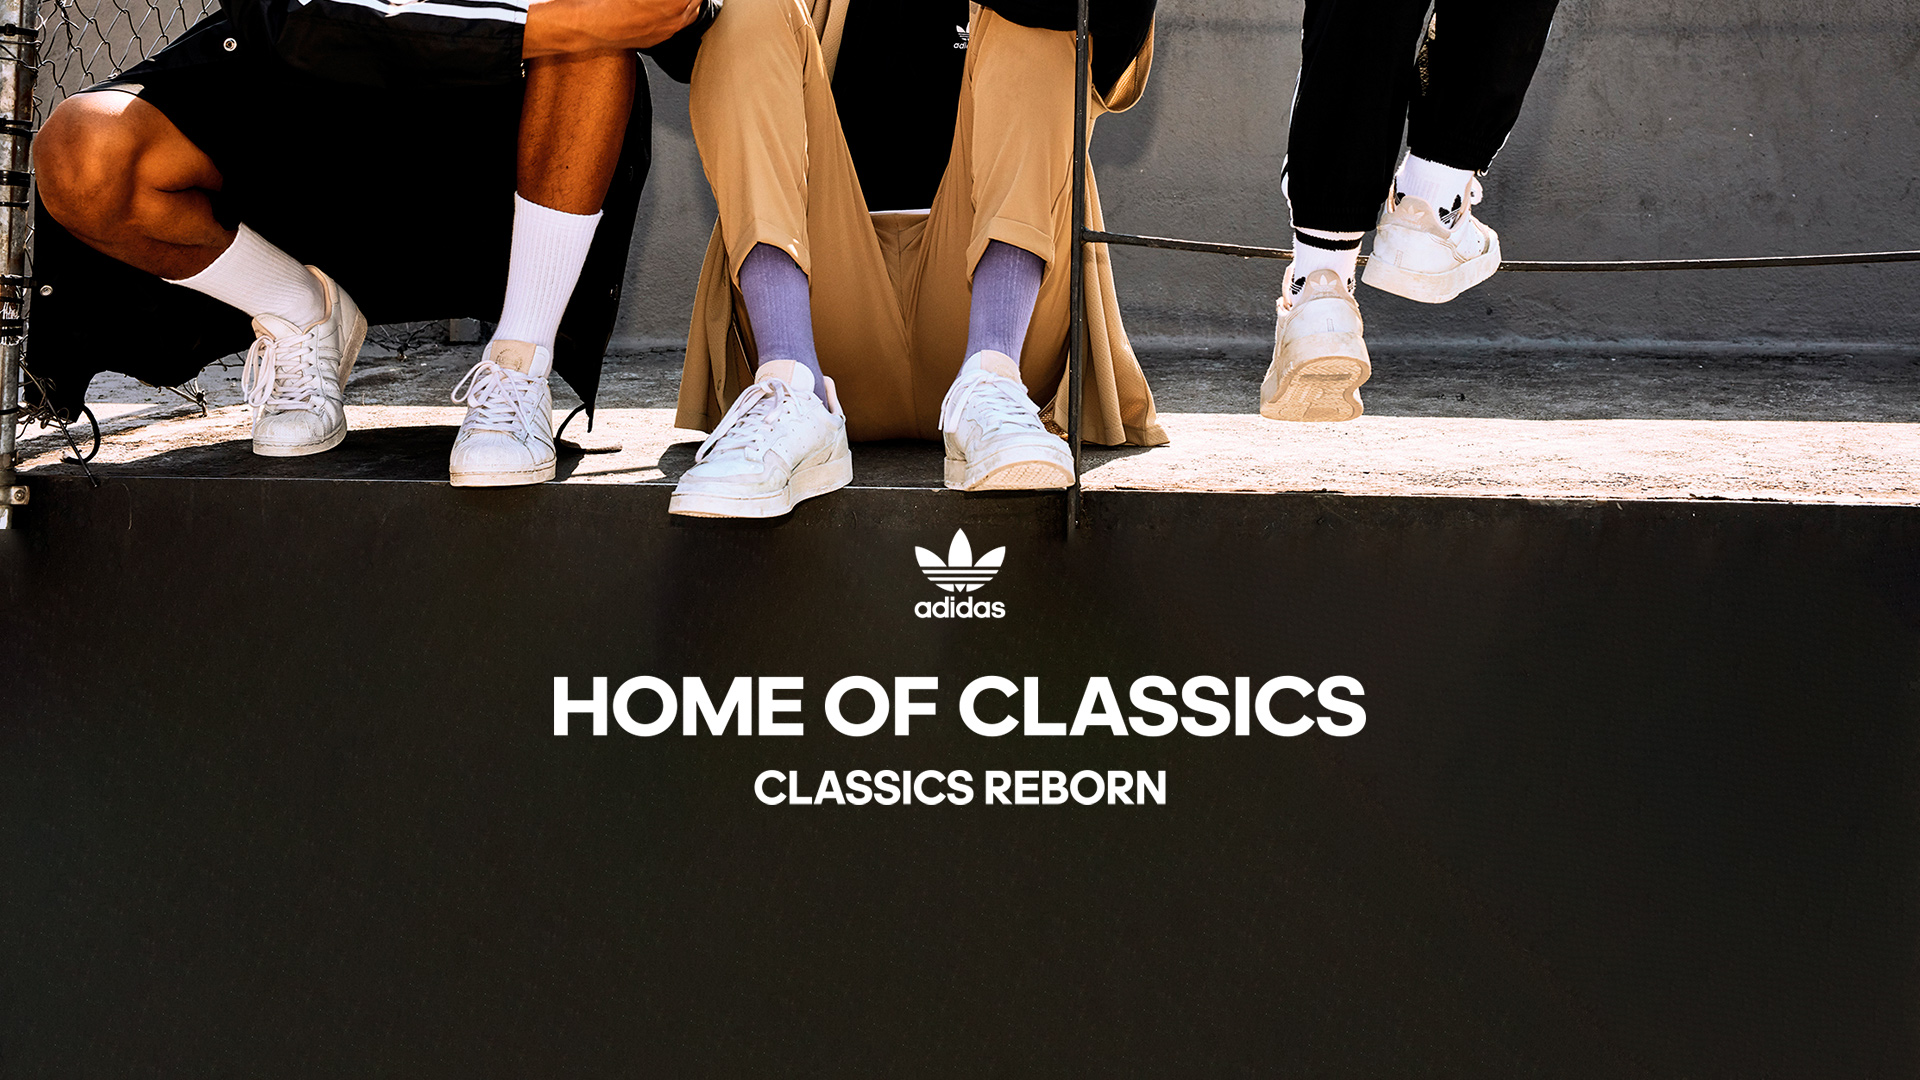 HOME OF CLASSICS: Iconic adidas Silhouettes